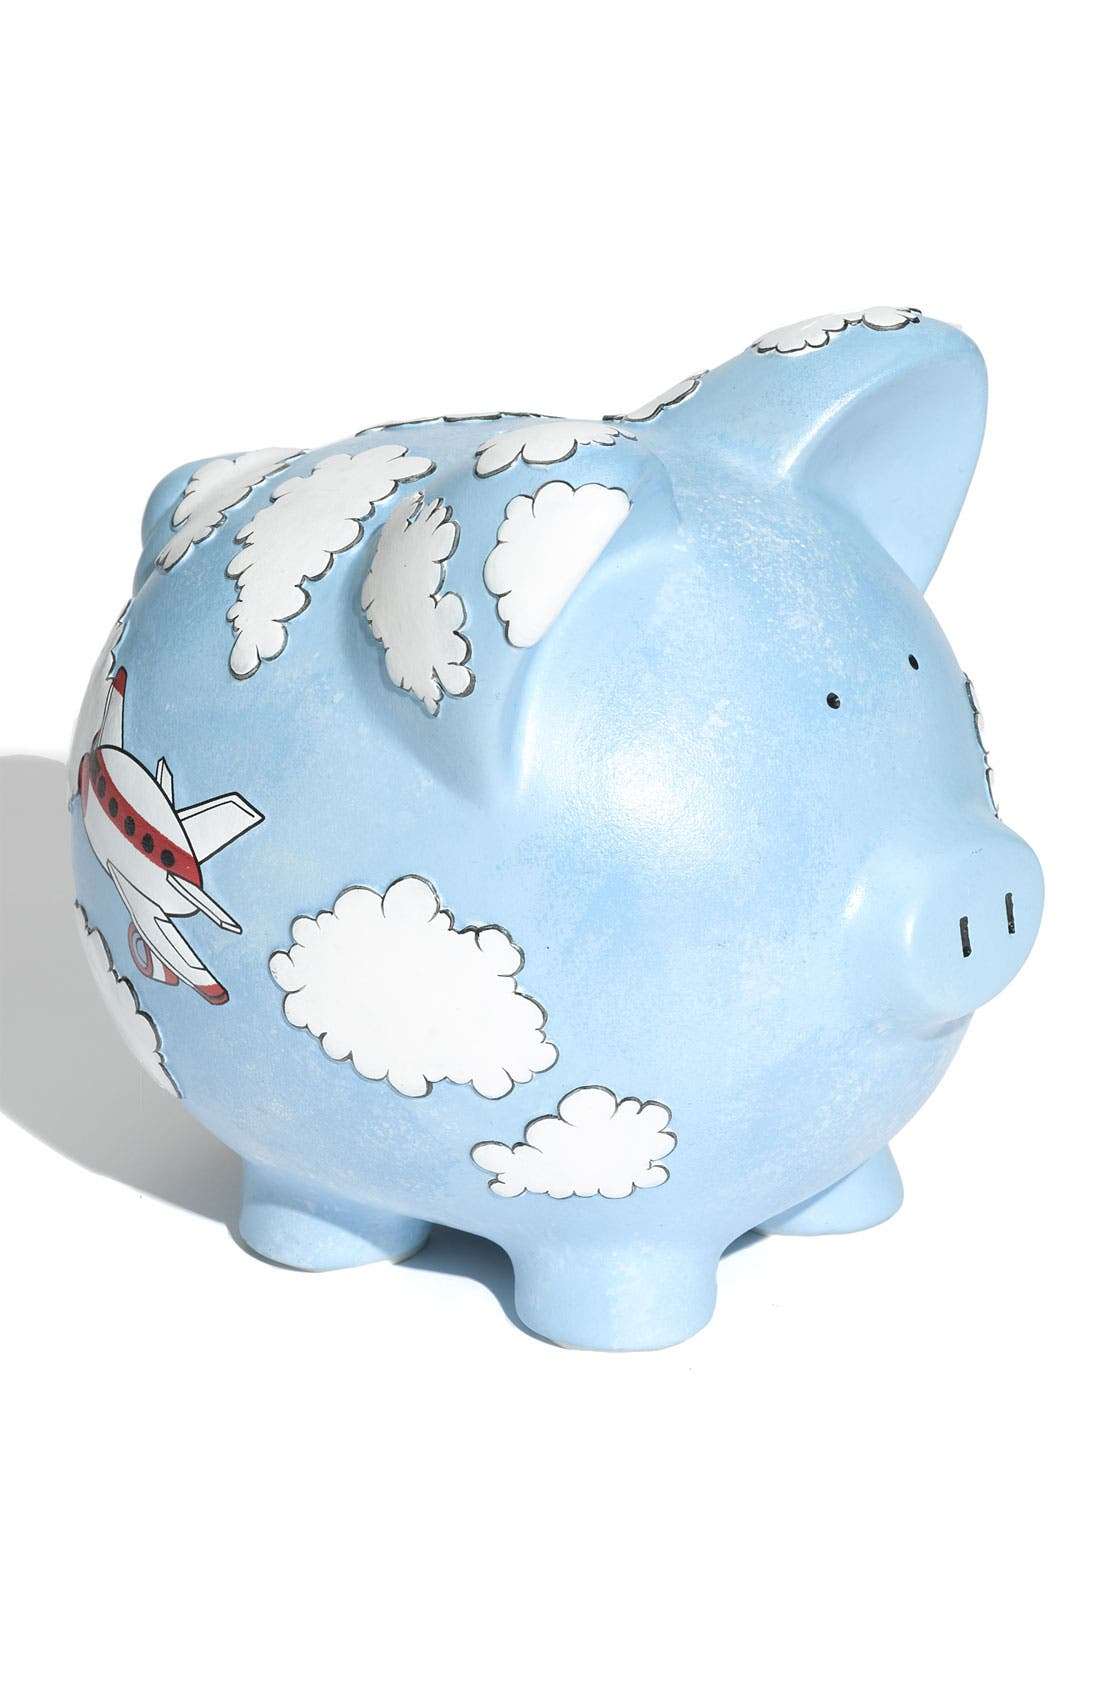 Main Image - Gift Giant 'Airplane - Large' Ceramic Piggy Bank